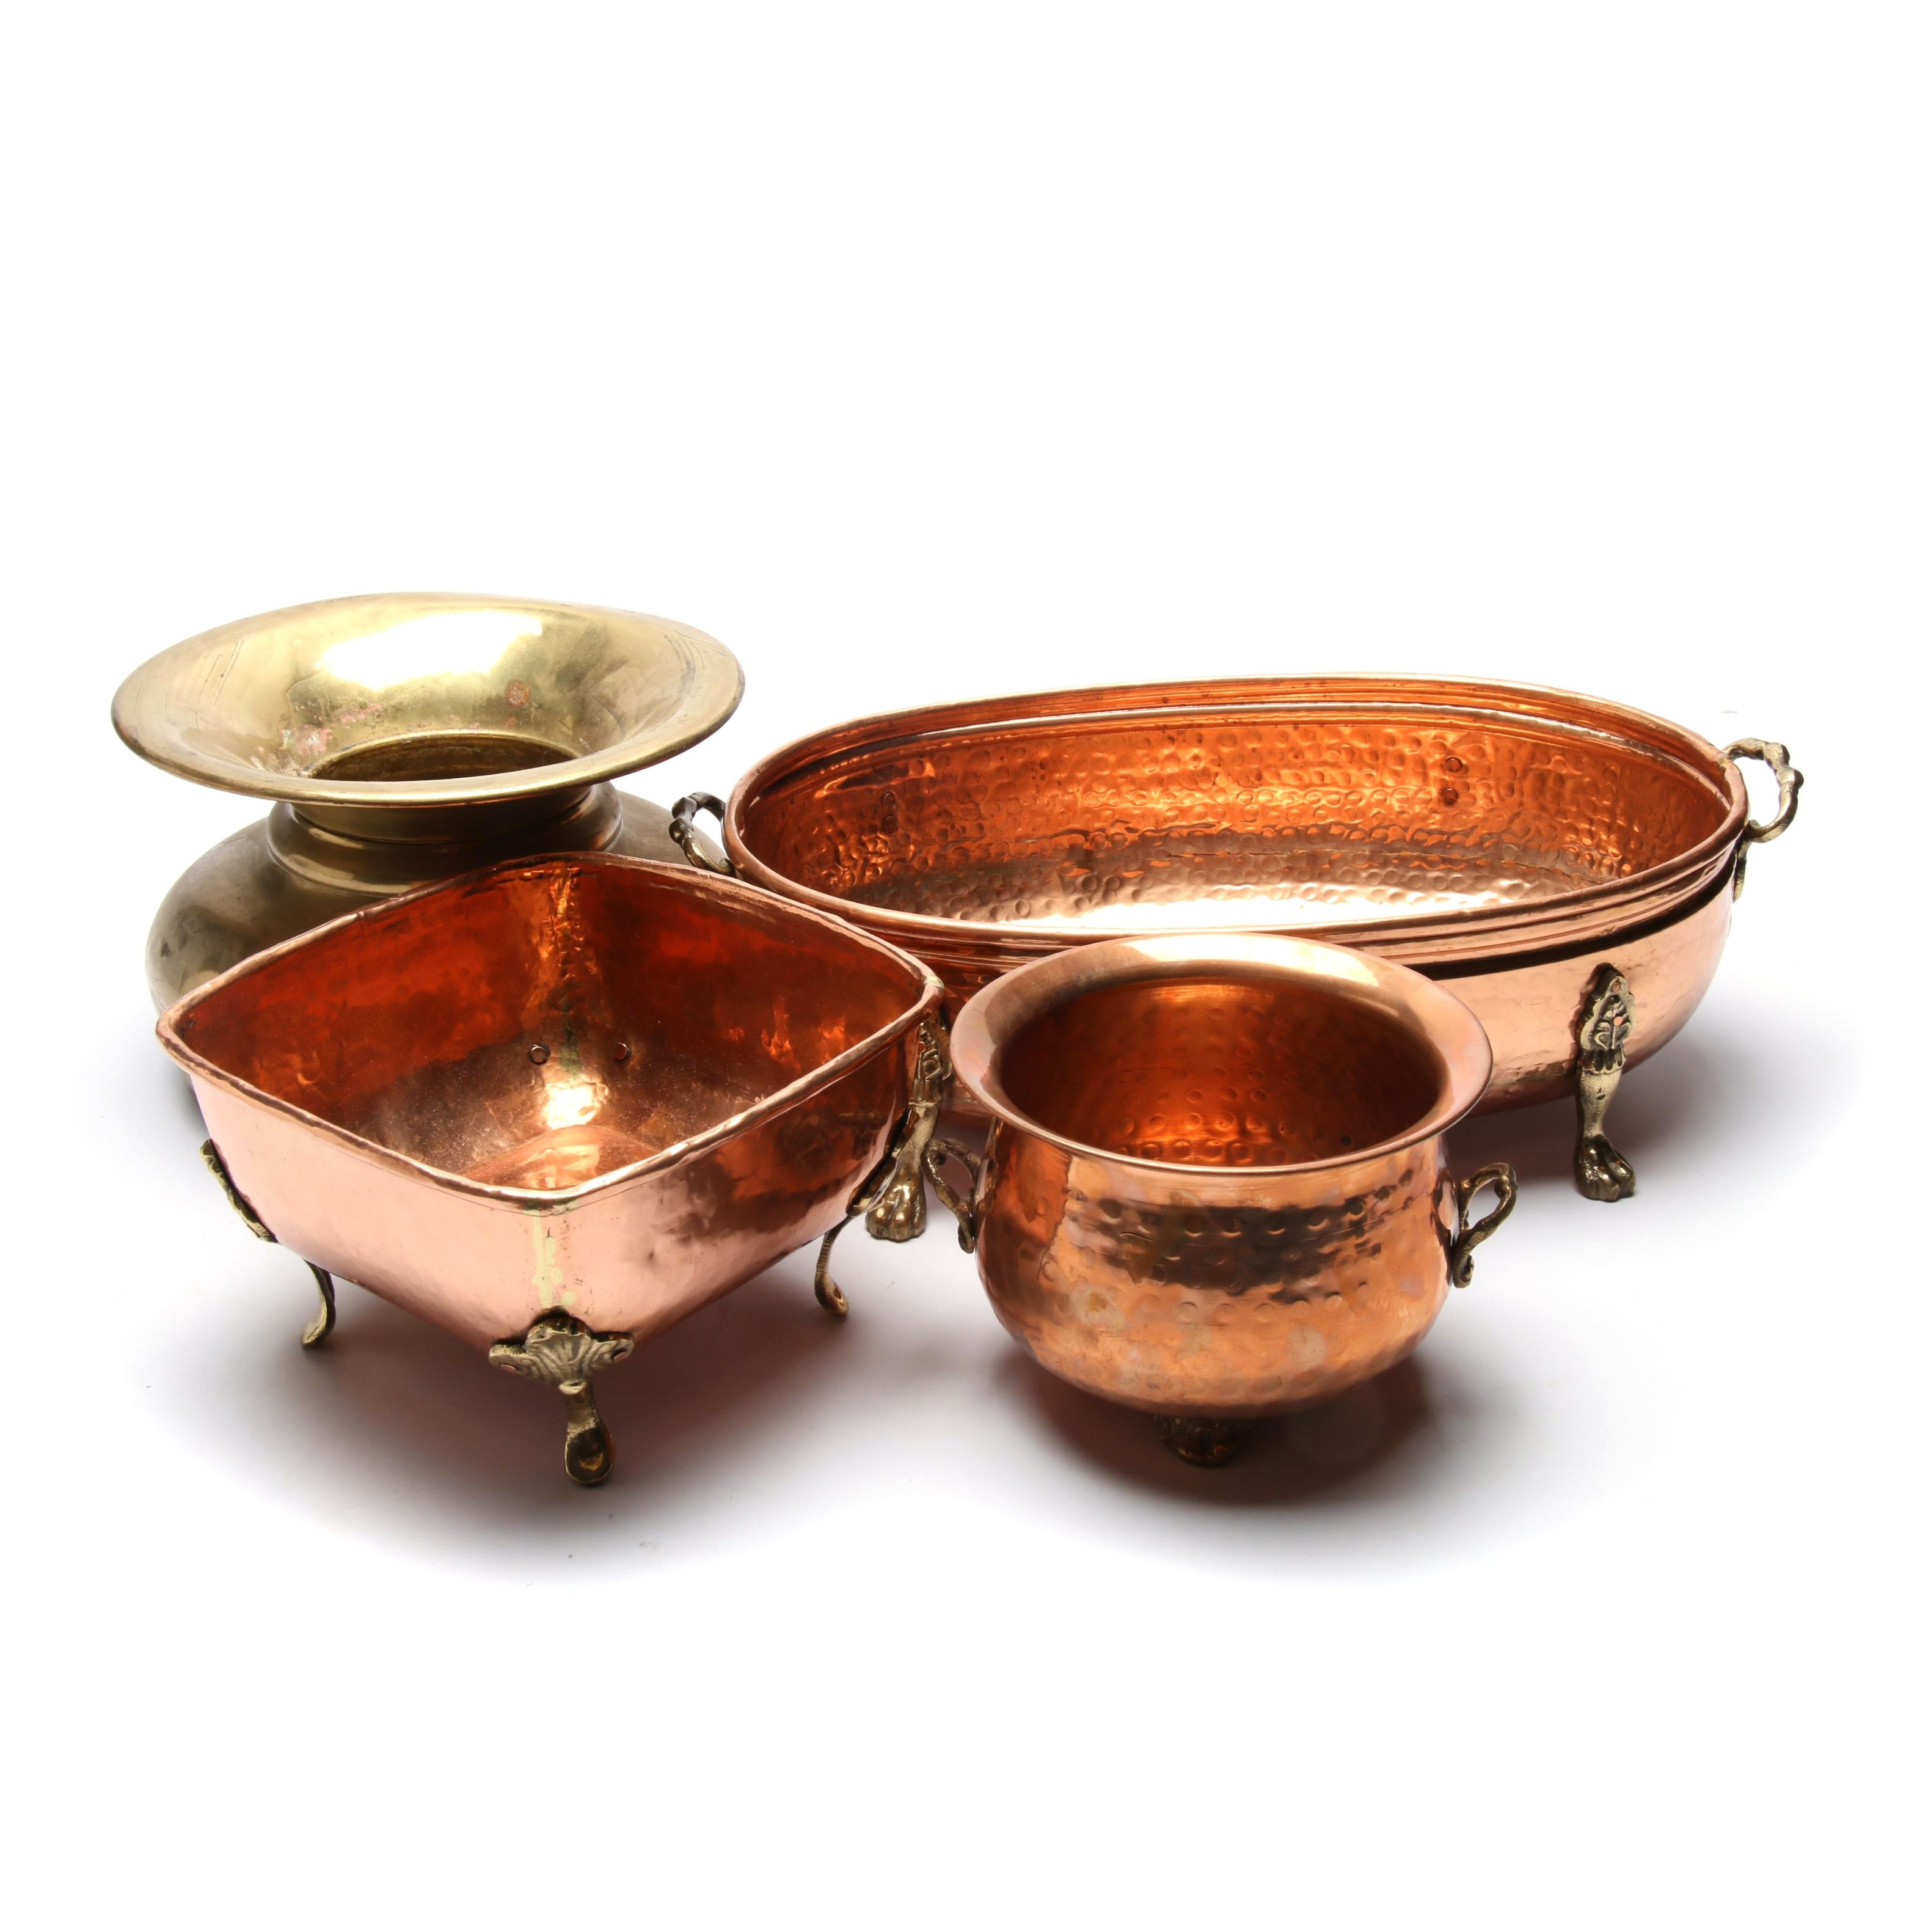 Copper Planters and Brass Spitton